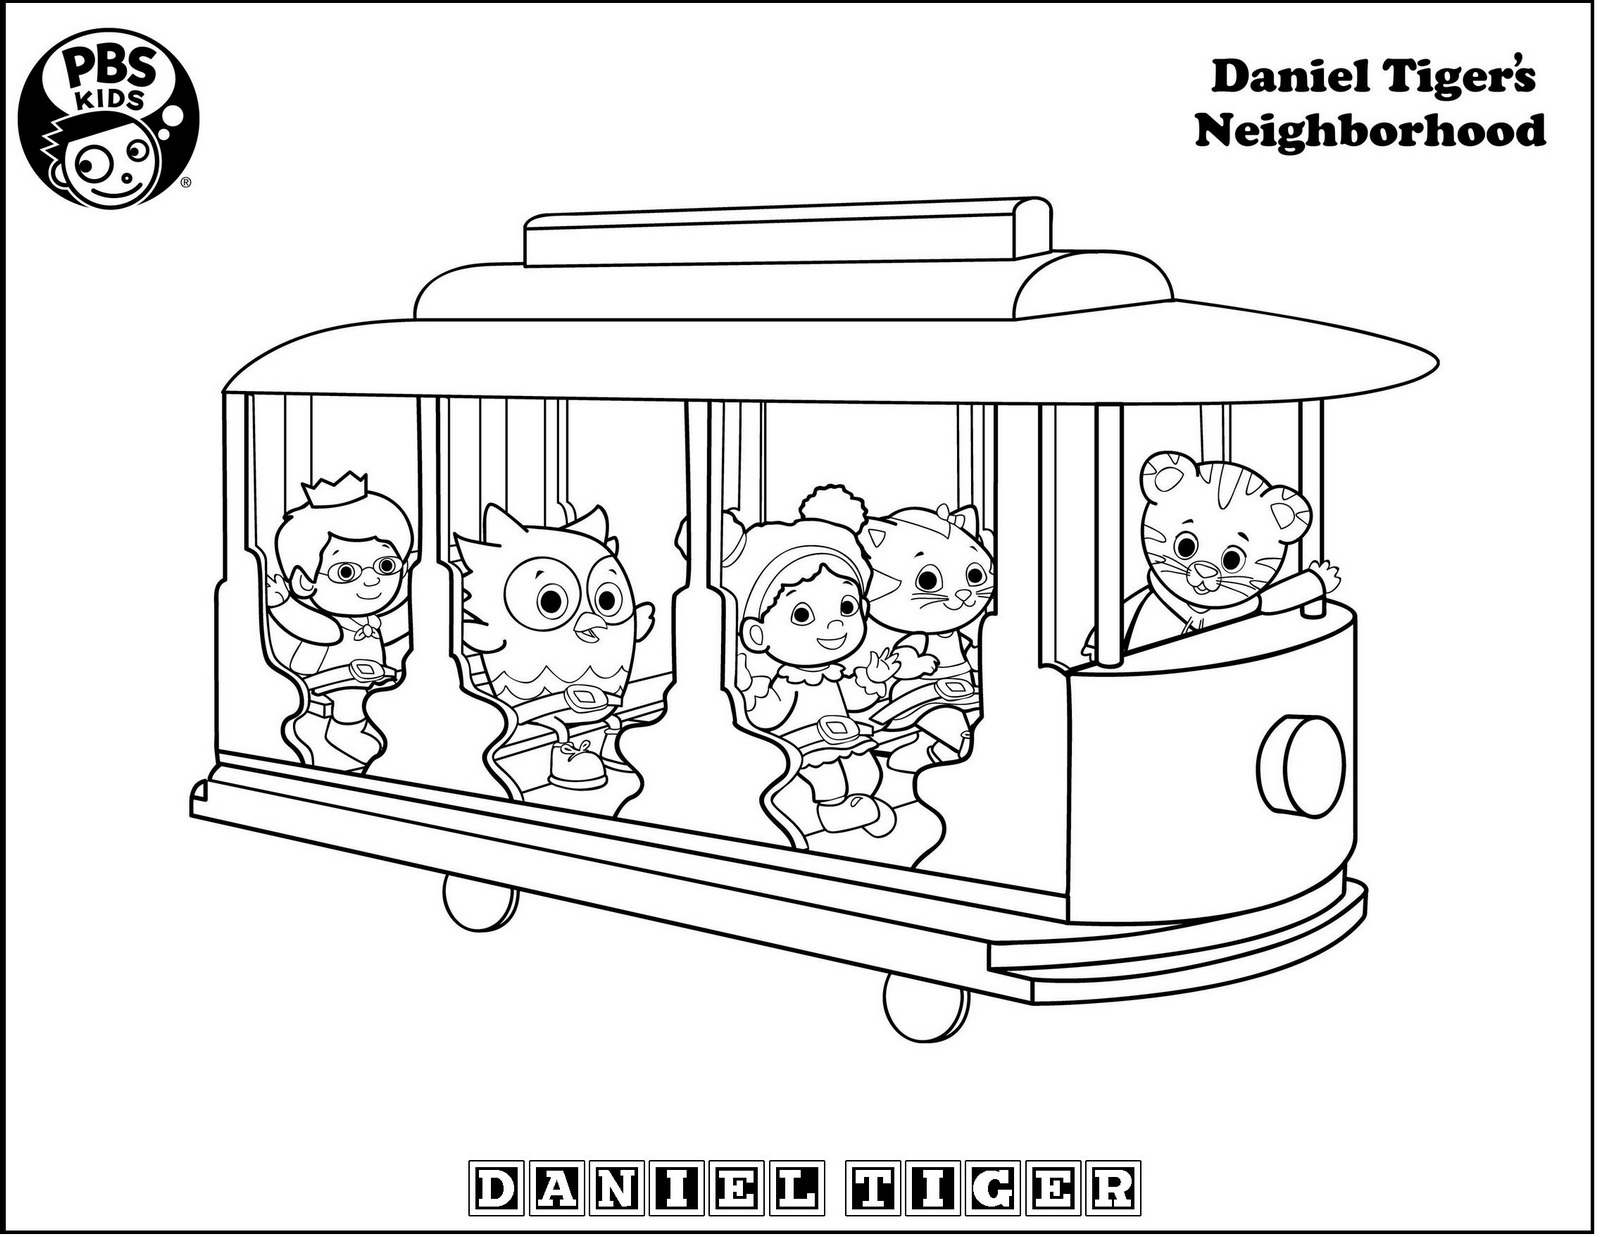 Printables trolley daniel tiger coloring page